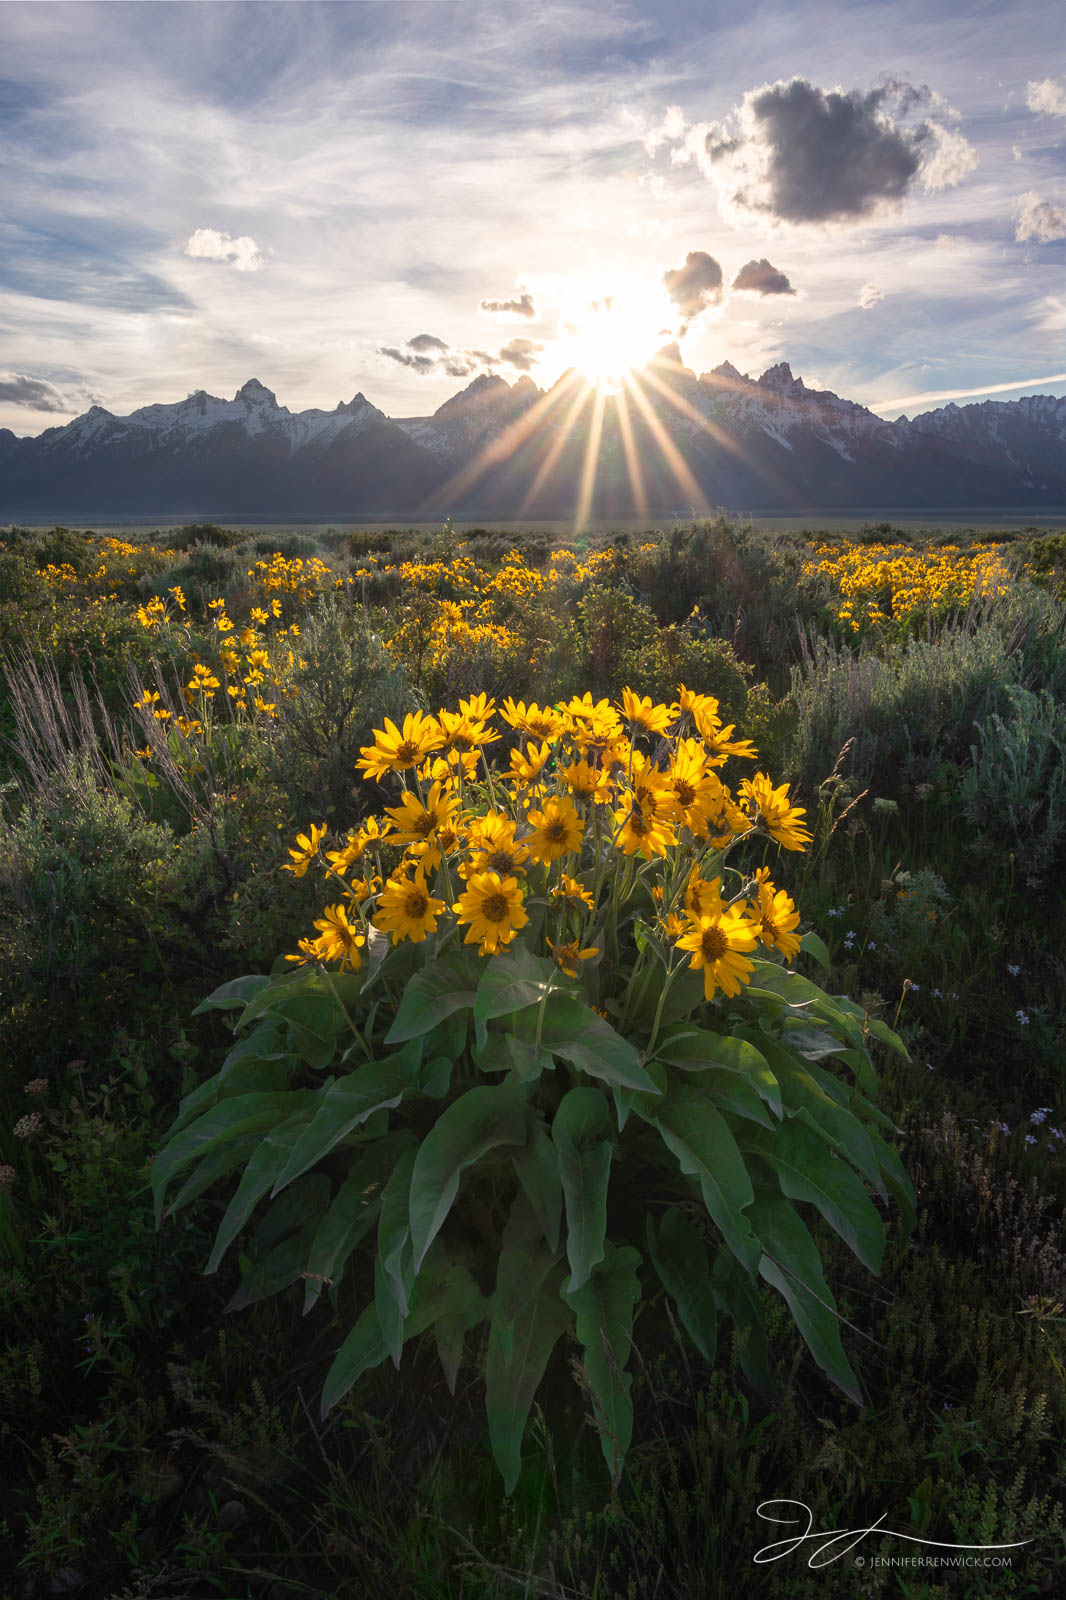 Arrowleaf Balsam root, Grand Teton National Park, Wyoming, mountains, landscape, wildflowers, sunset, clouds, Jackson Hole, Antelope Flats, Gros Ventre, sunburst, photo